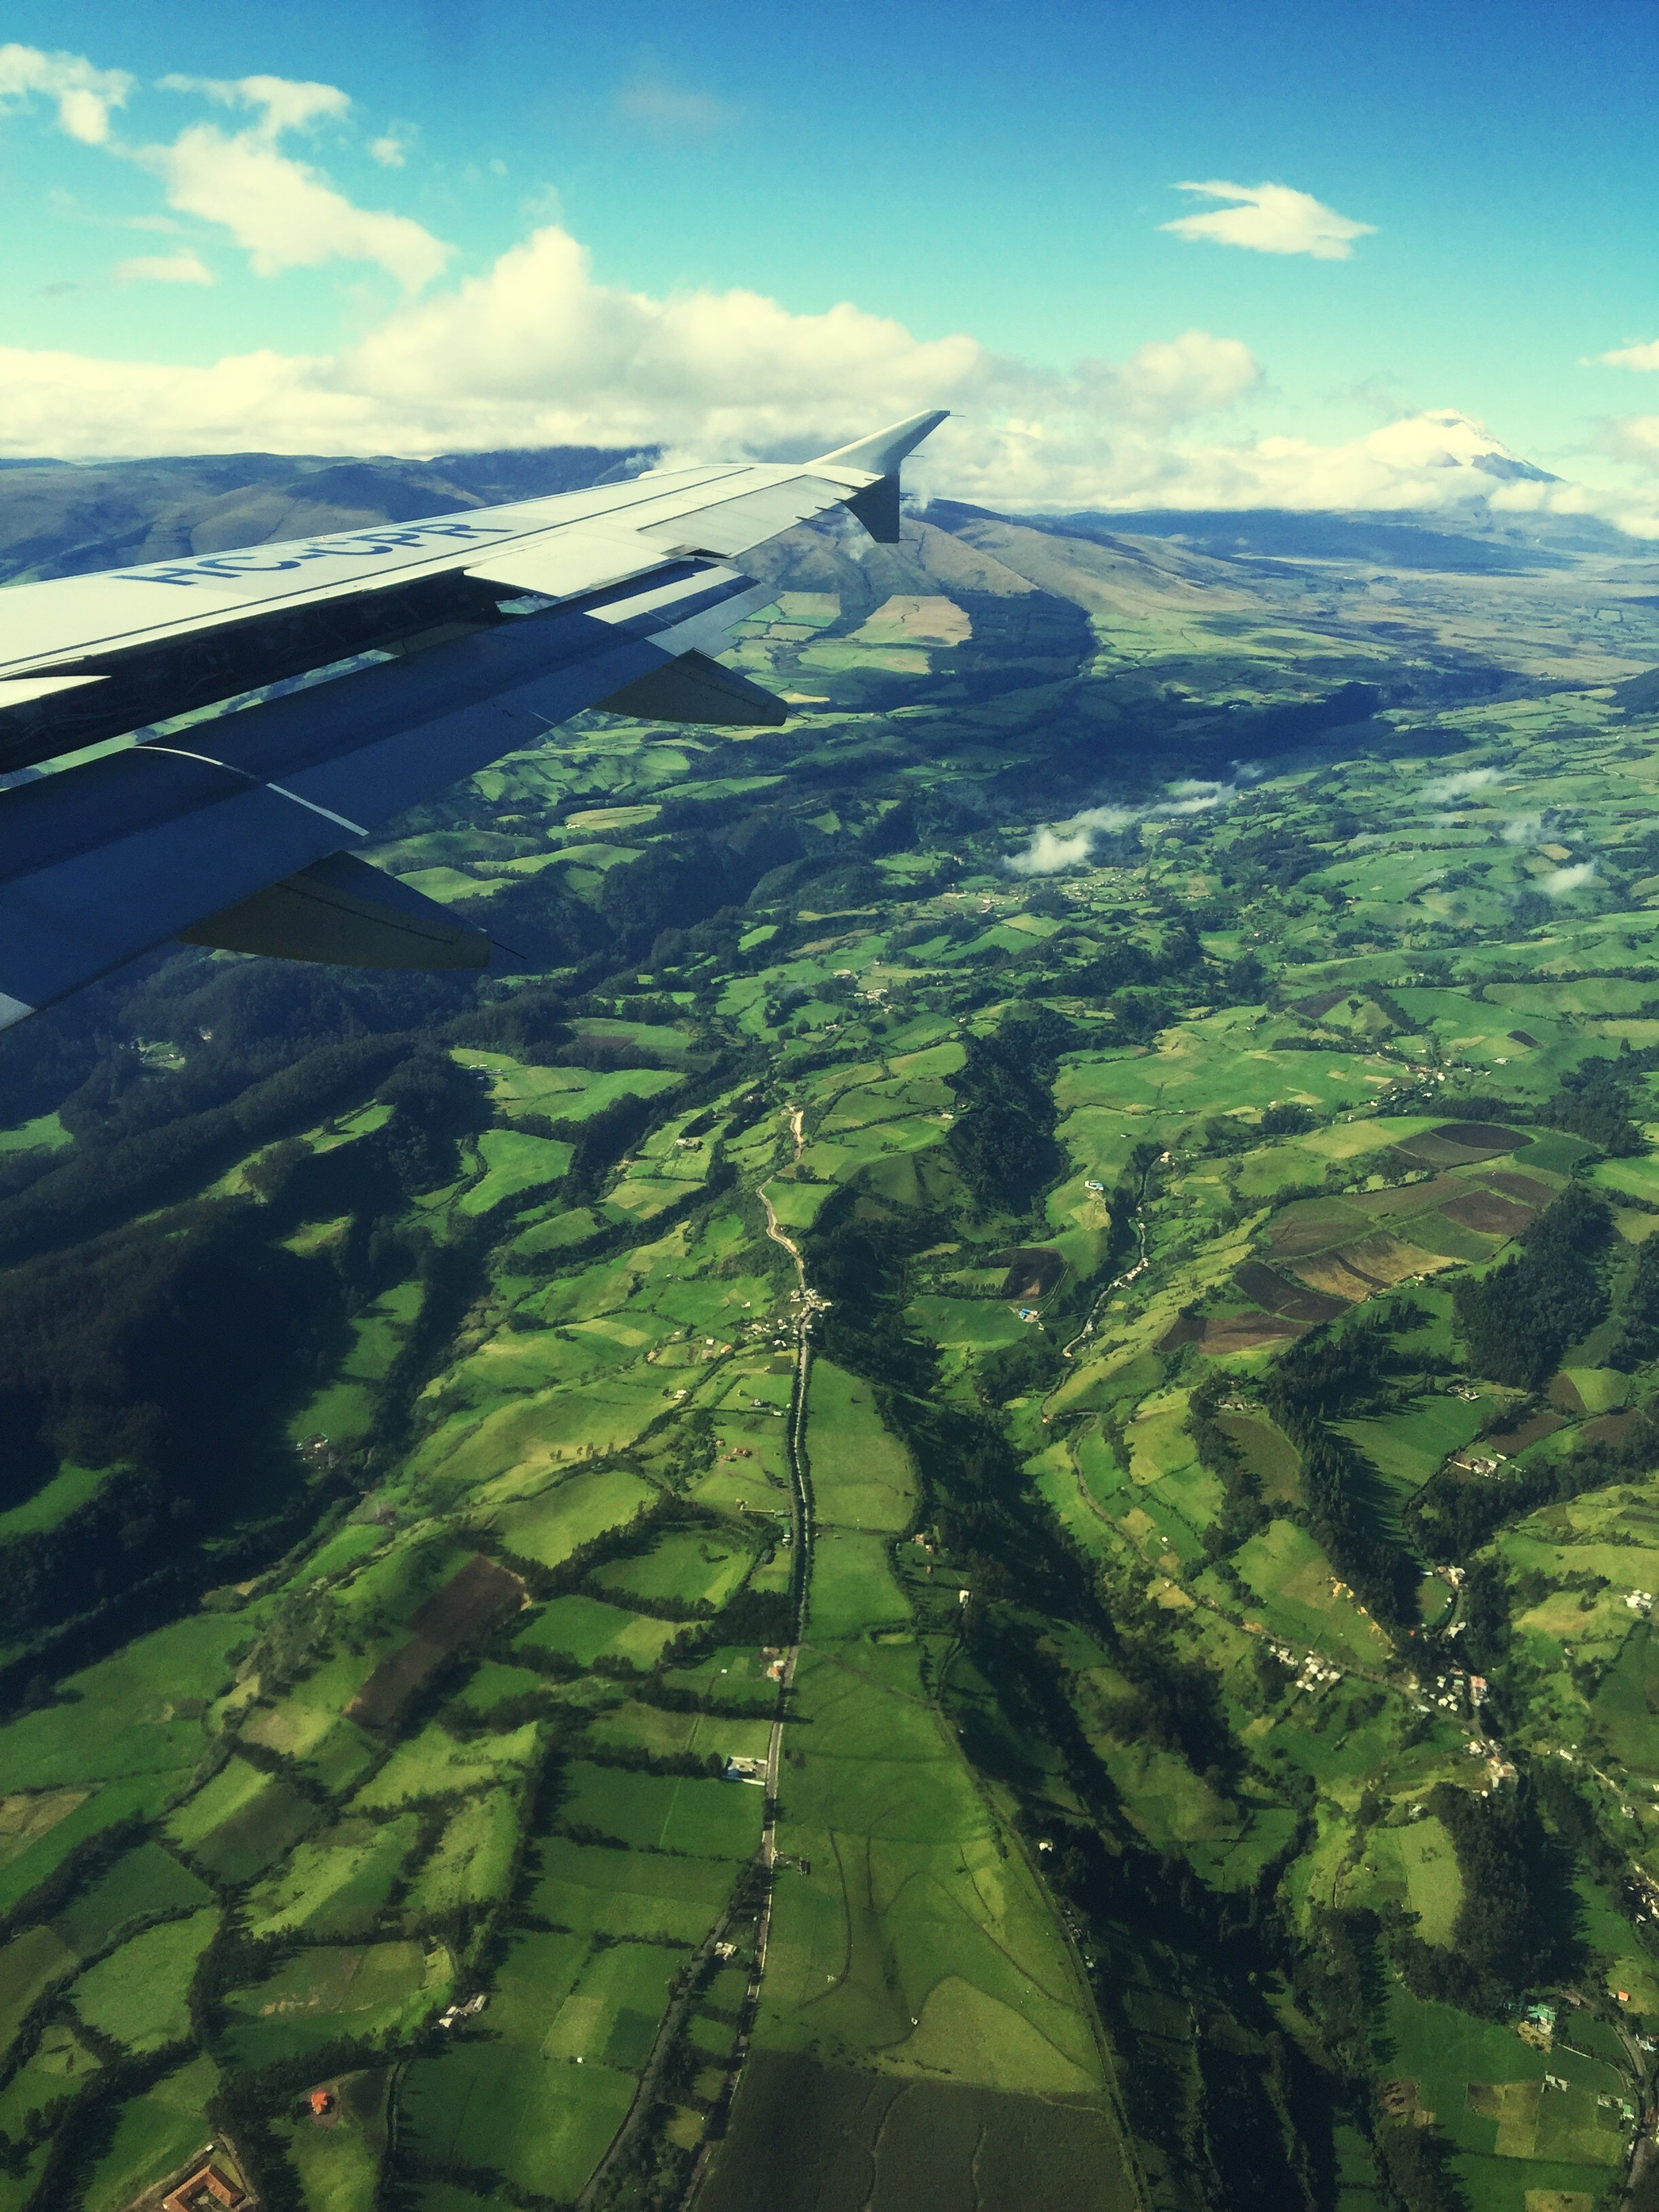 aerial view, mountain, landscape, transportation, scenics, sky, tranquil scene, beauty in nature, tranquility, nature, green color, high angle view, mode of transport, day, mountain range, travel, cloud - sky, idyllic, cloud, airplane